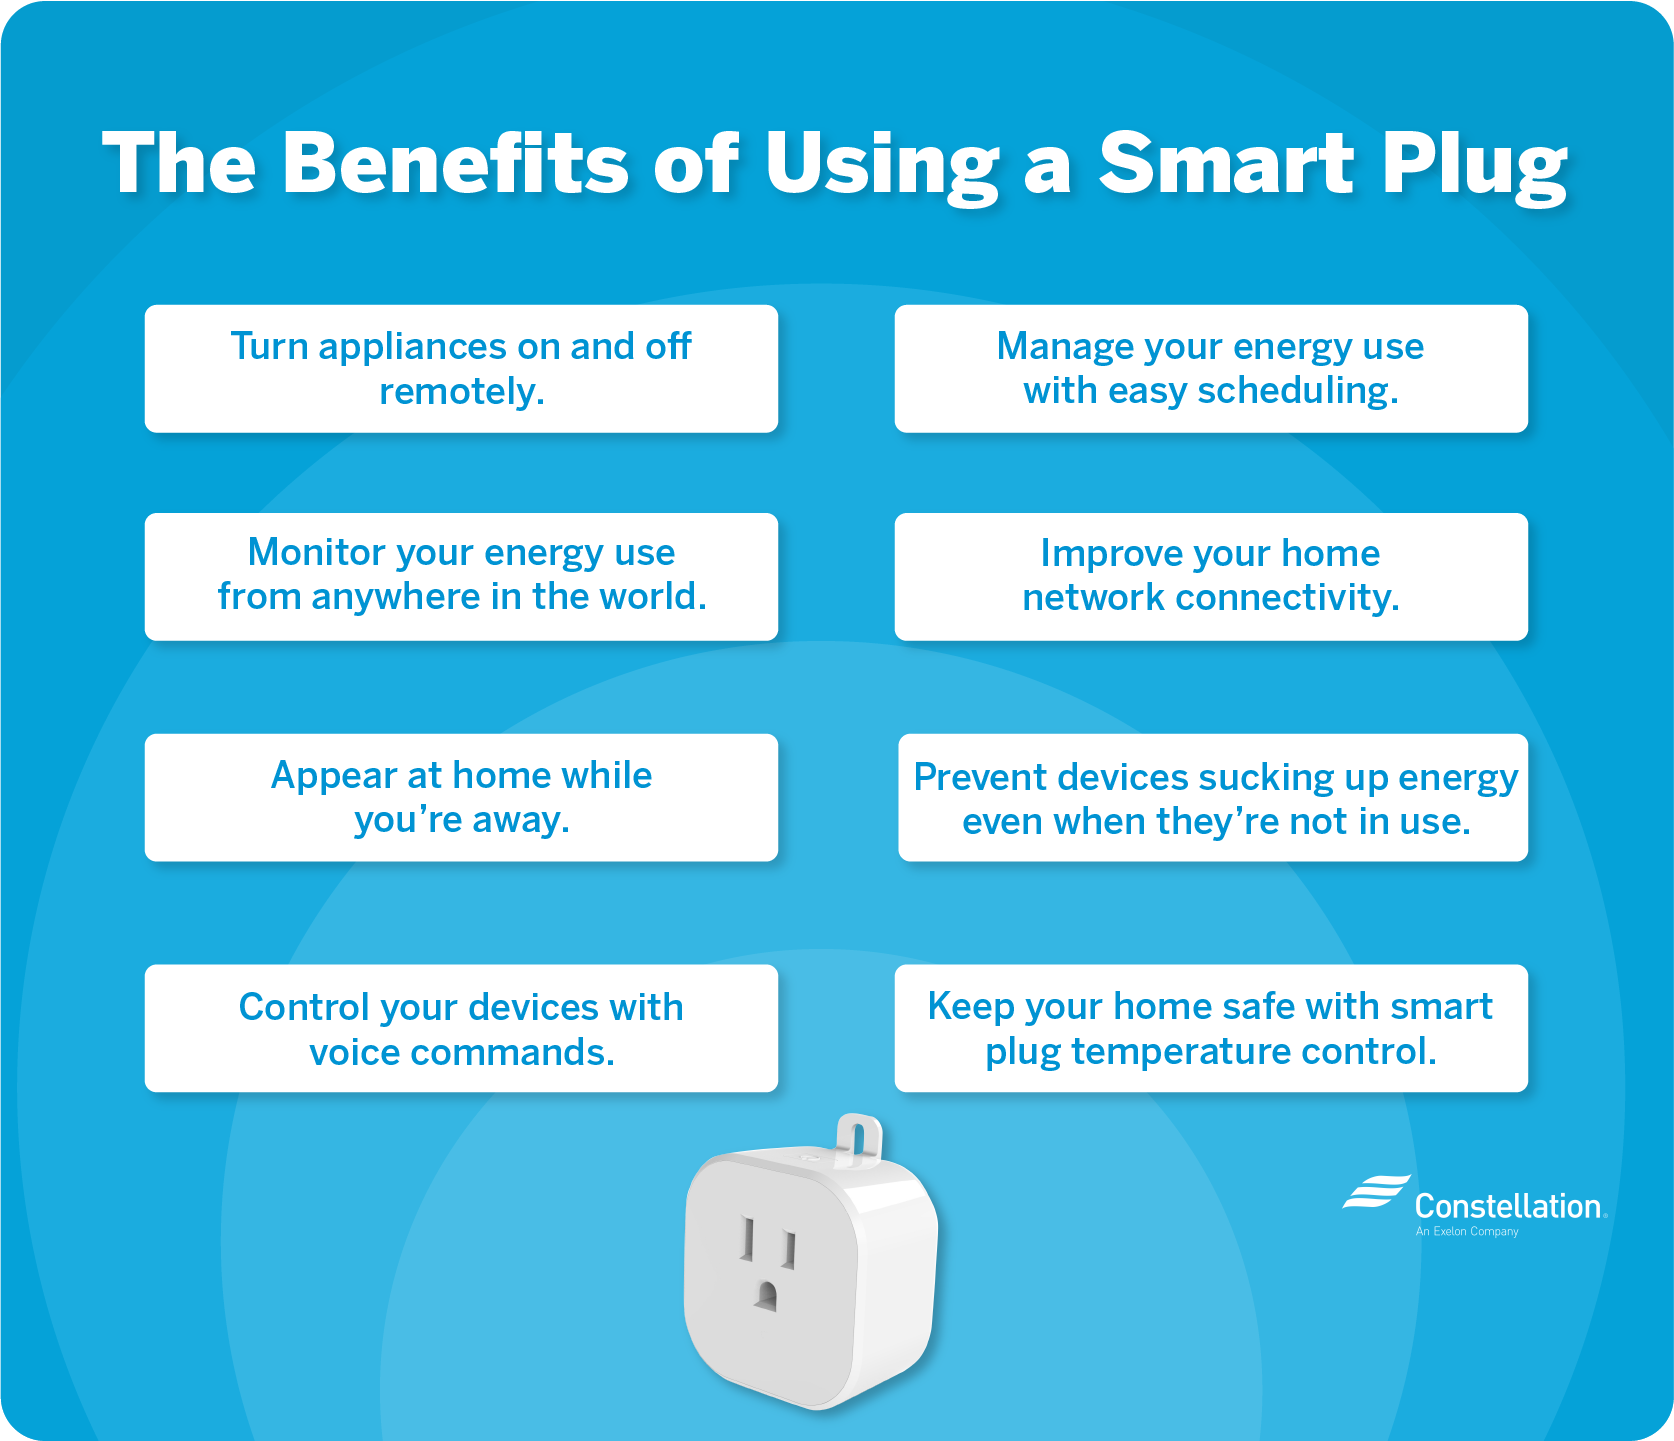 Benefits of using a smart plug